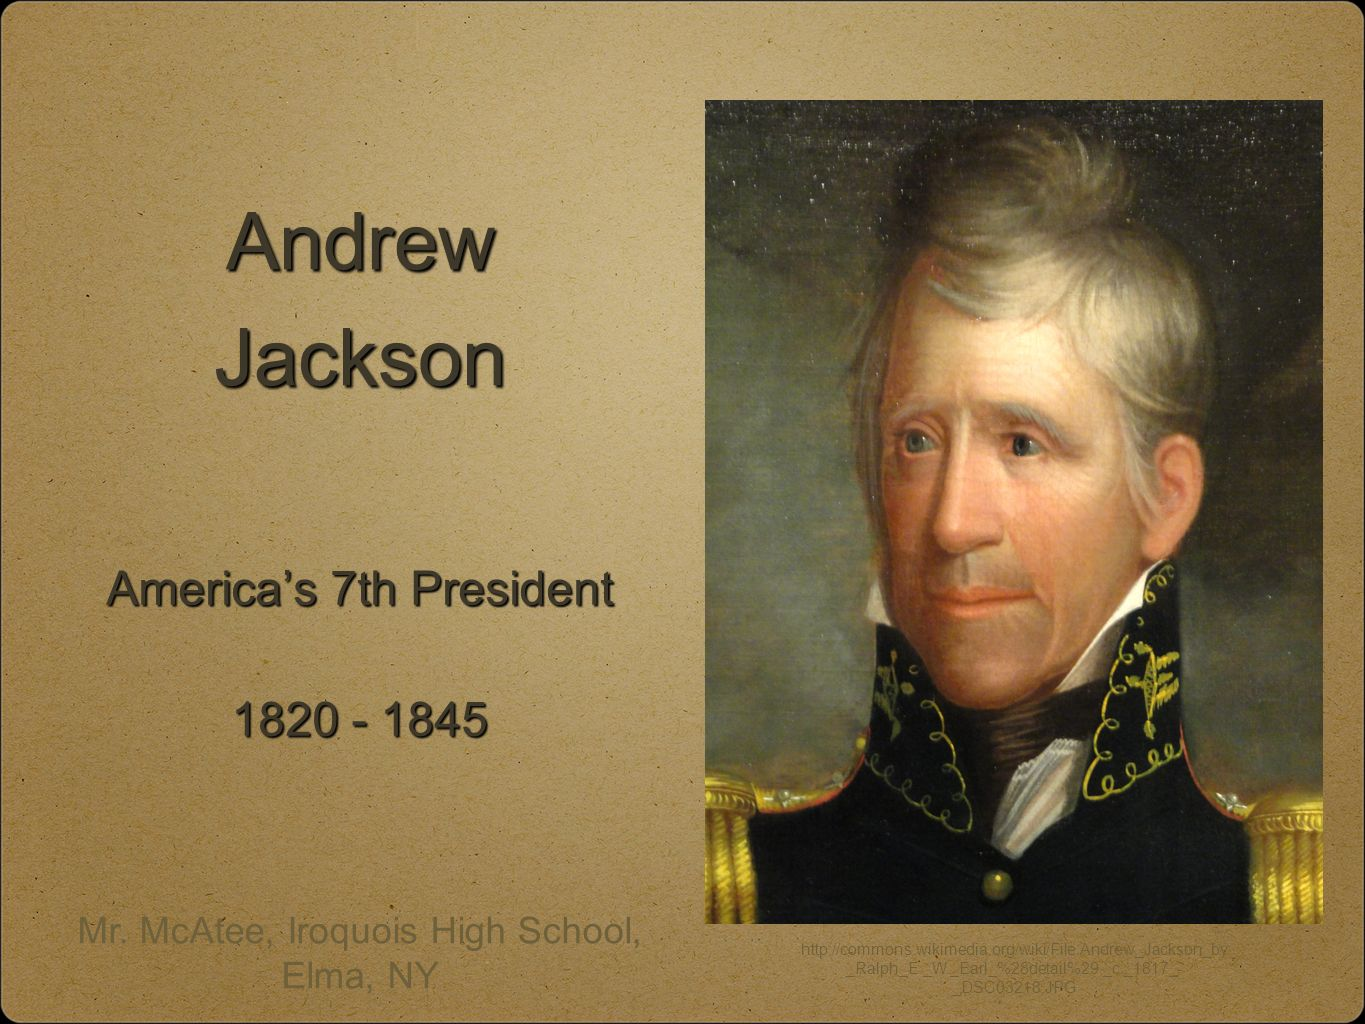 a biography of andrew jackson Read andrew jackson: a biography by robert v remini with rakuten kobo the newest addition to palgrave's great generals series focuses on andrew jackson's career including his time as a gener.